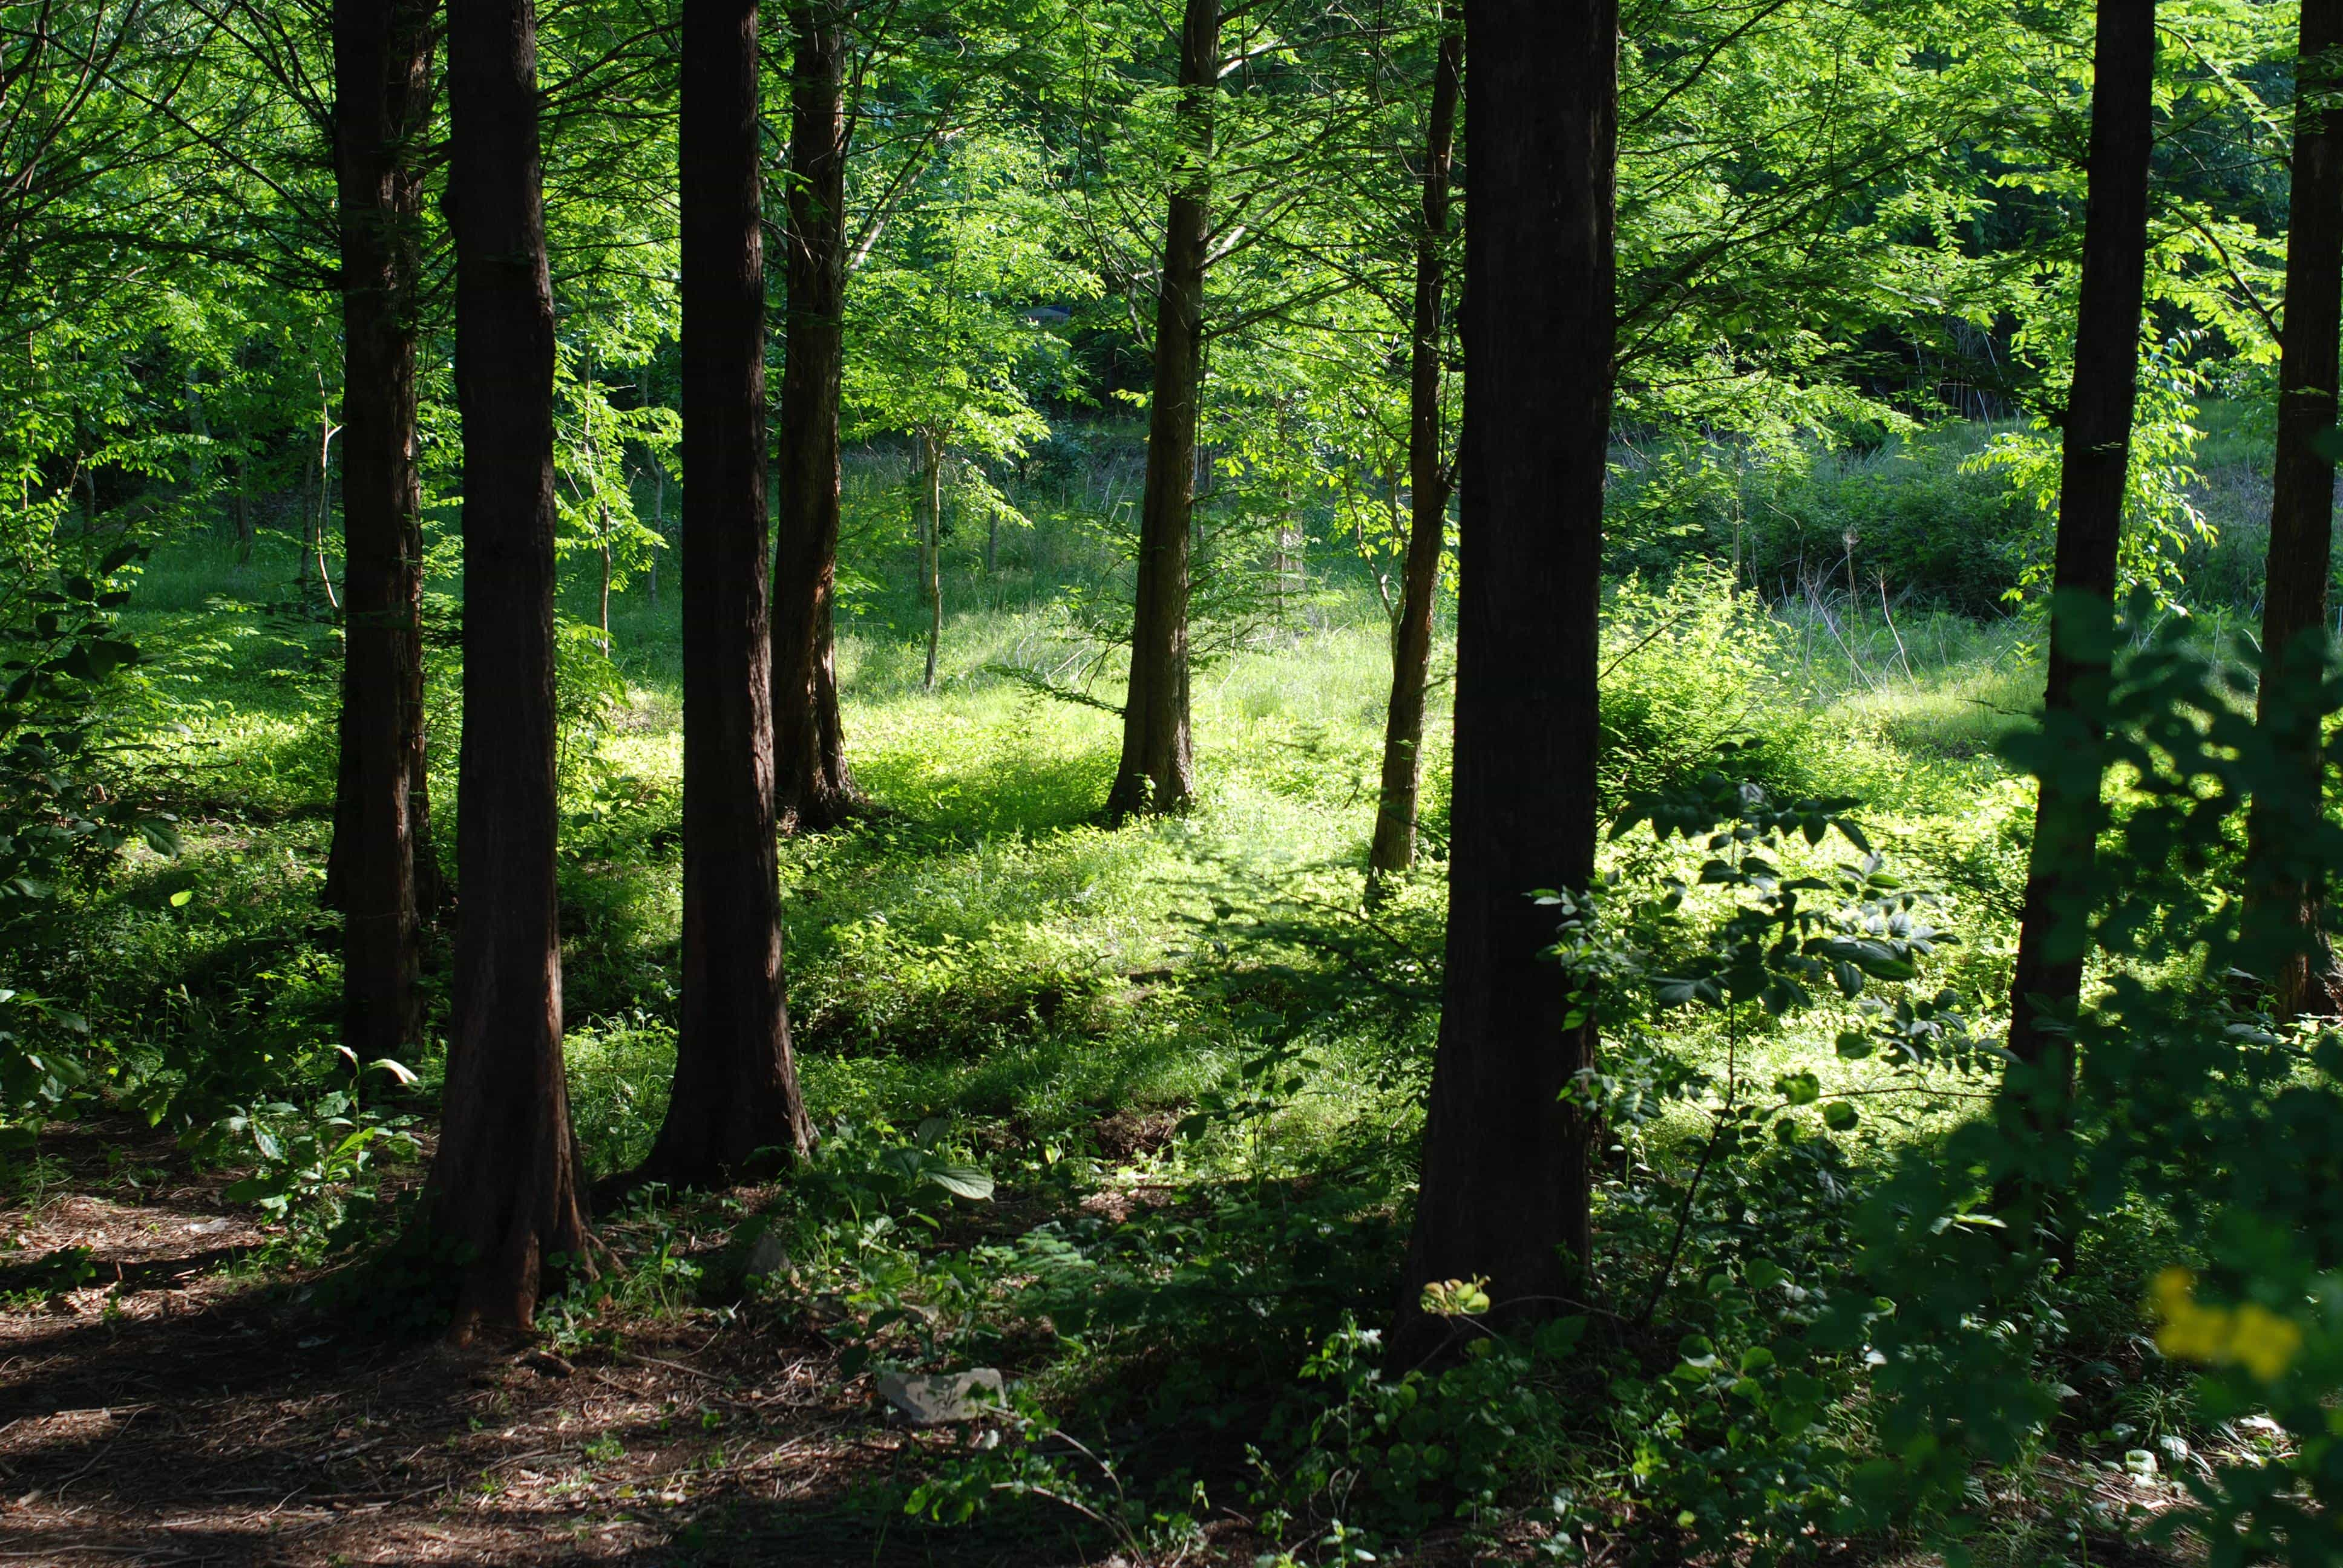 A green, shadowed forest, sunlit from the right.